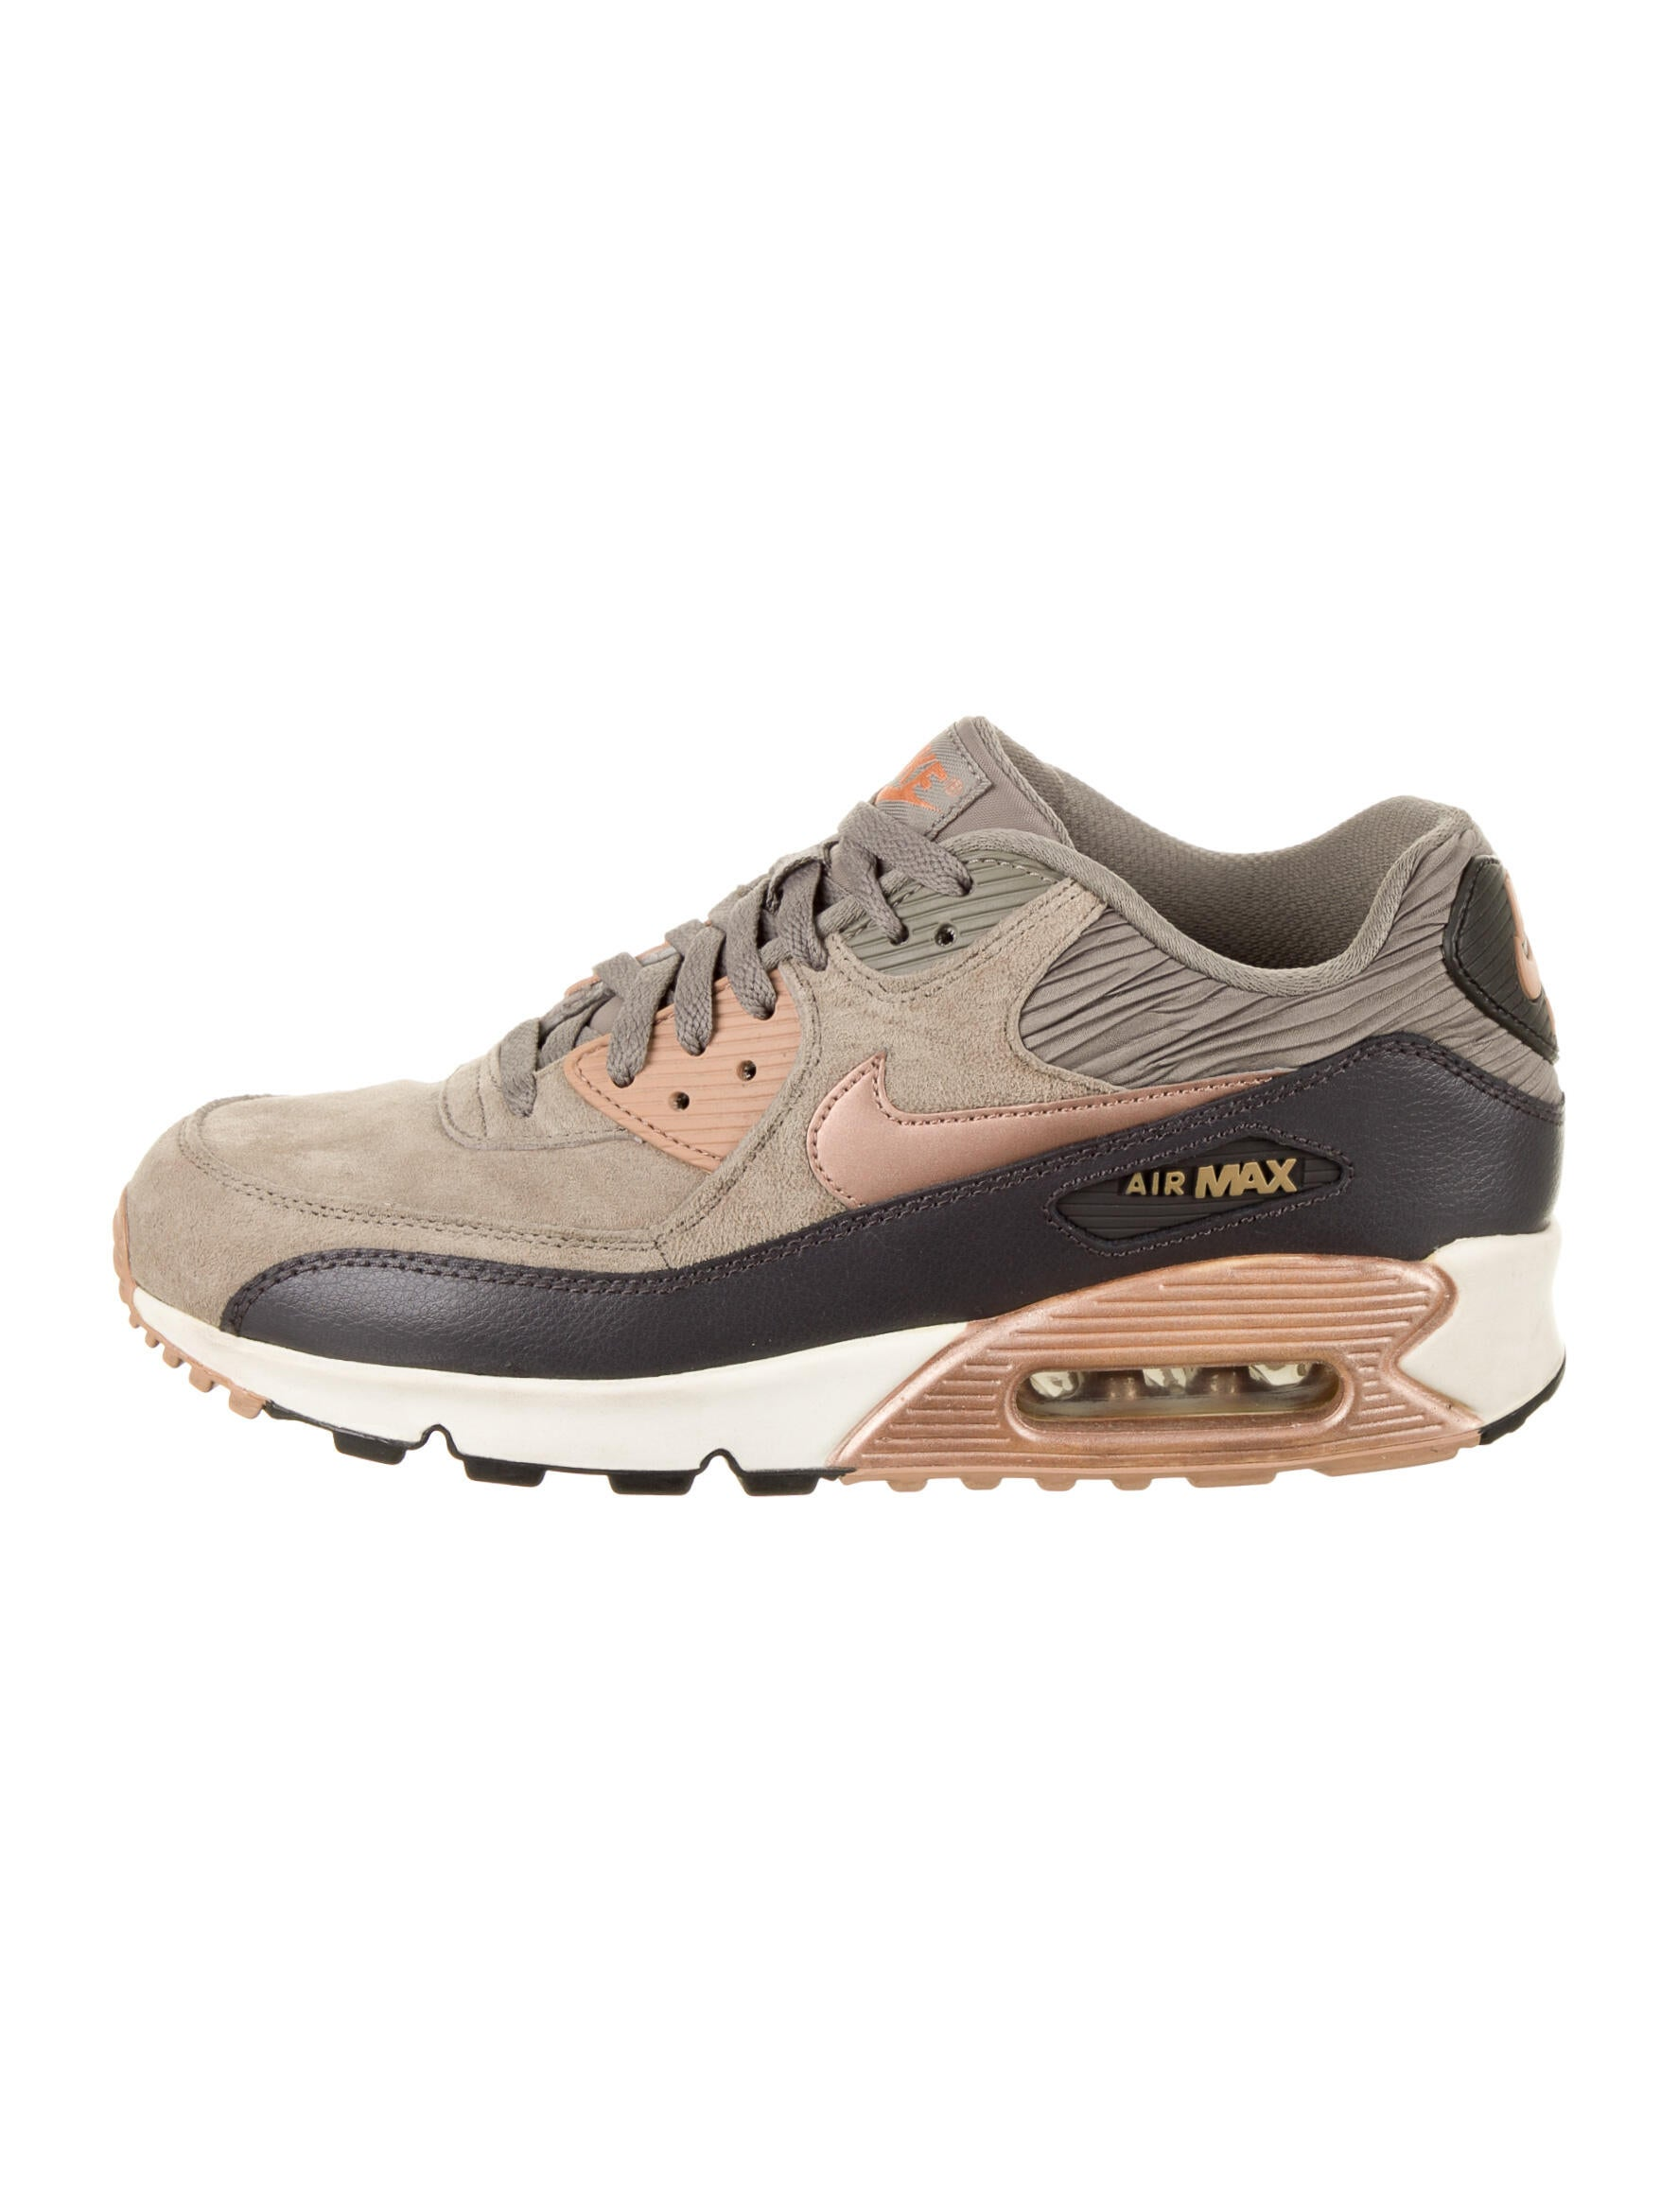 Nike Air Max 90 Leather 'Iron Metallic' Sneakers - Shoes ...